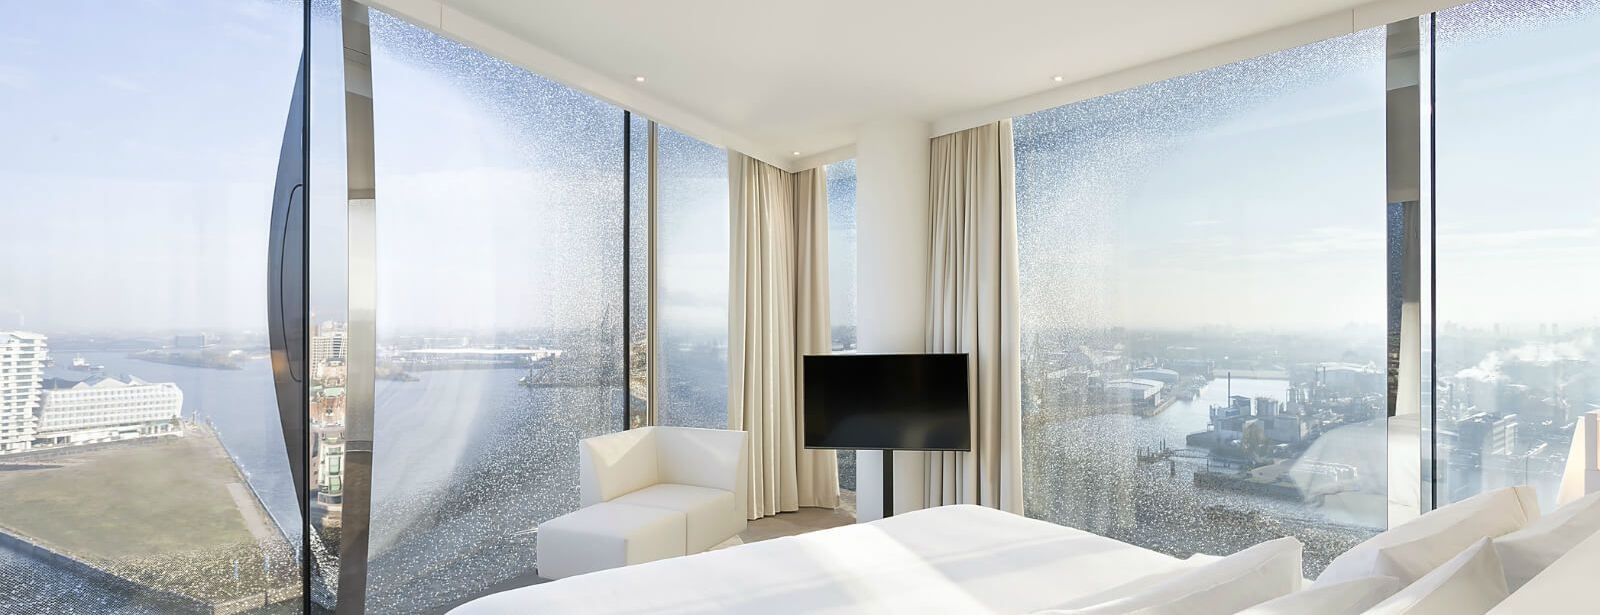 Westin Hotel Hamburg - Stunning views of Hamburg